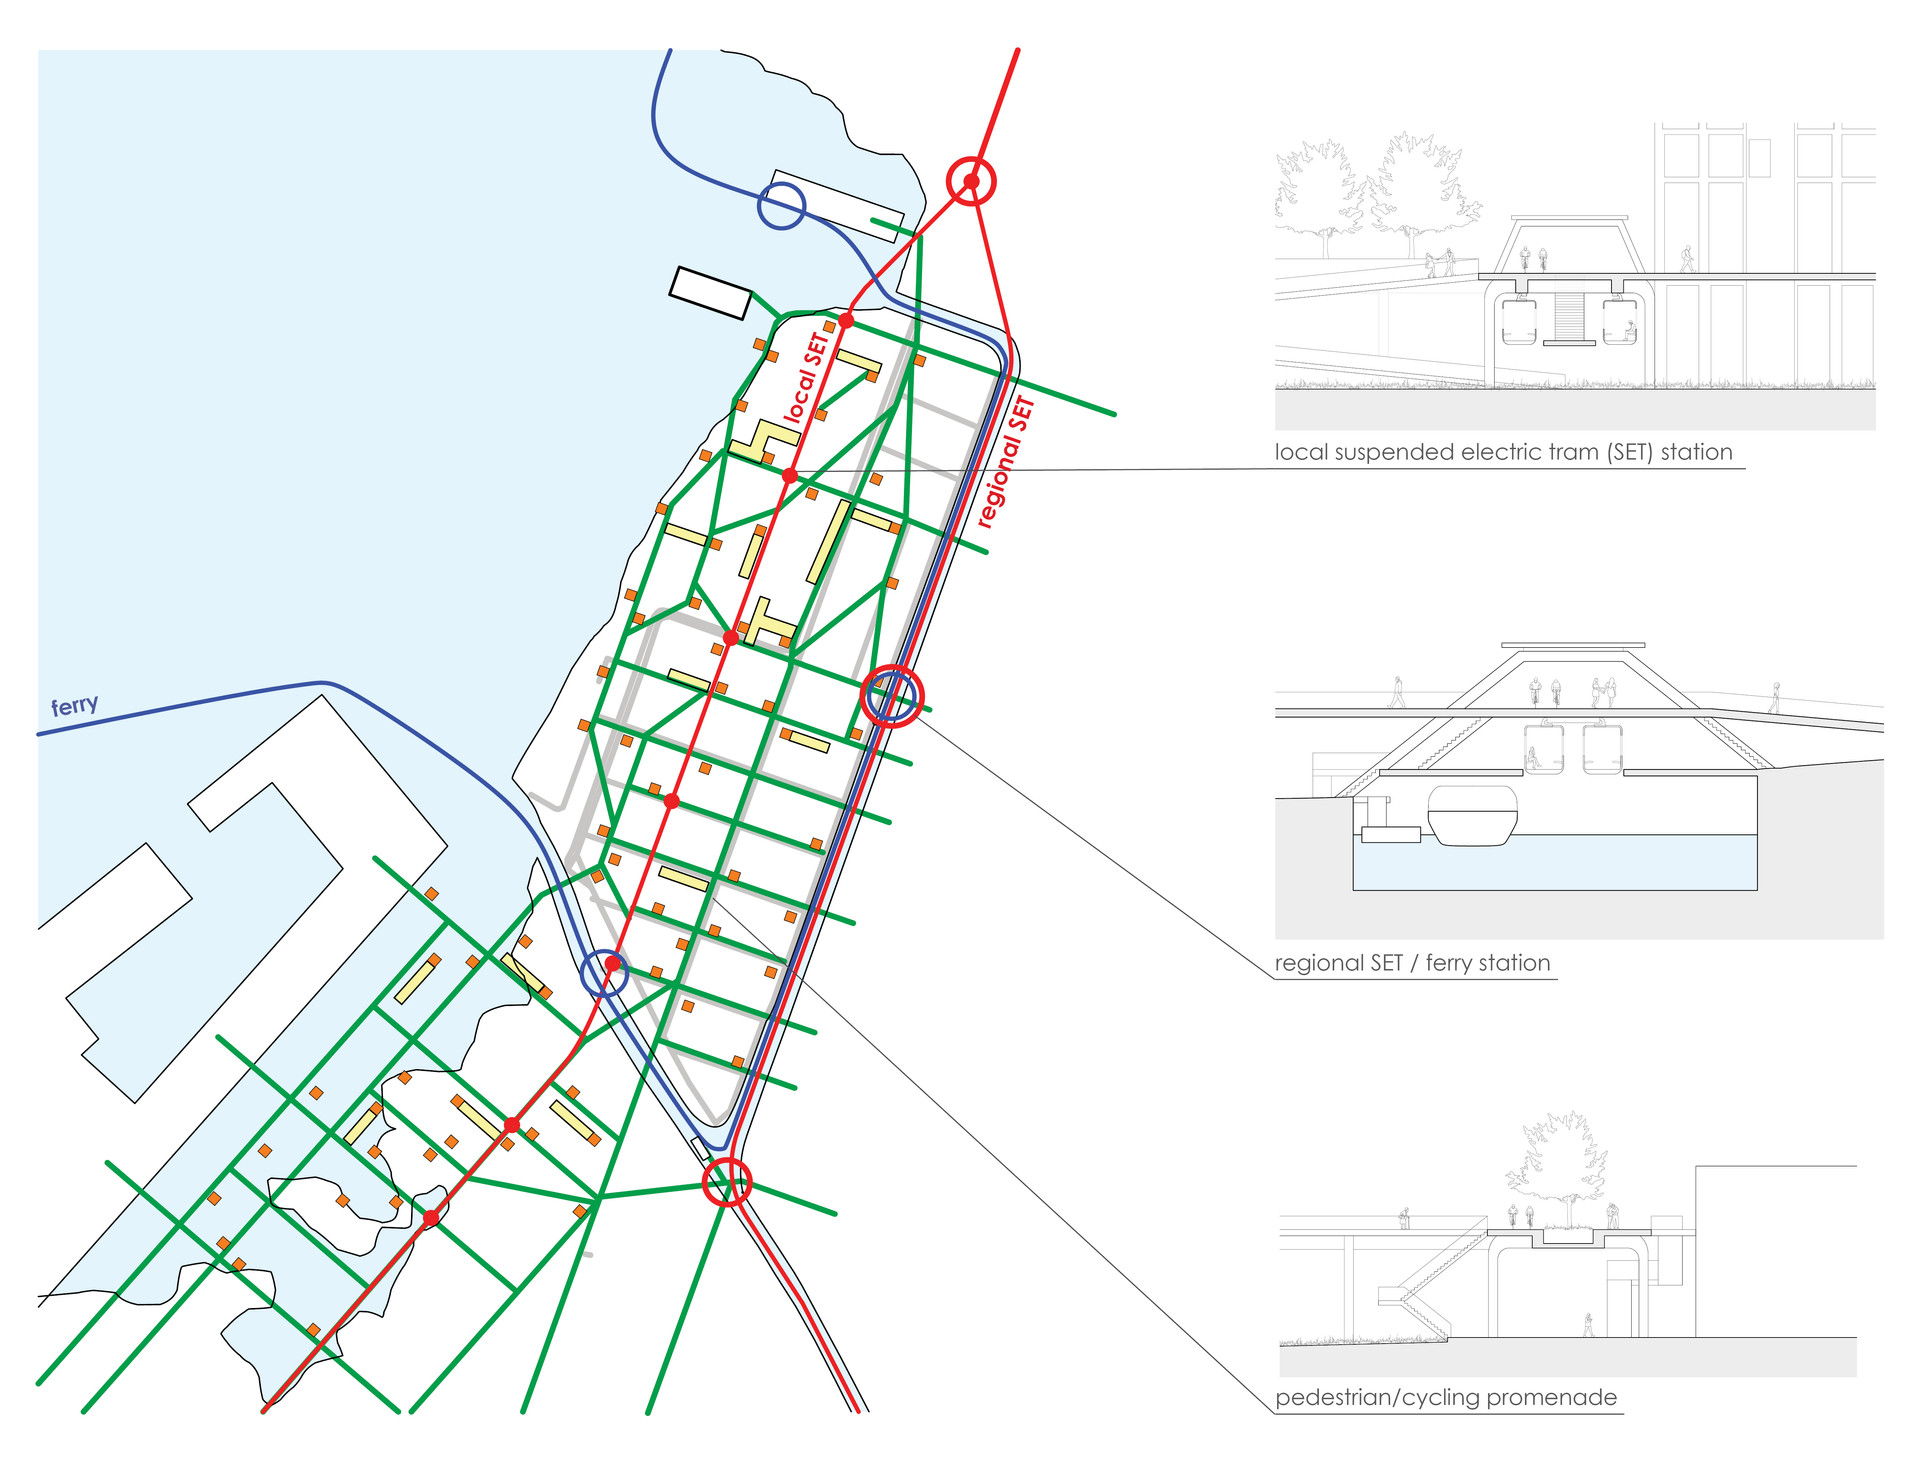 Green transport network phases out carbon-based streets: Suspended Electric Tramlines (SET) powered by photovoltaic canopies run over coastal wetlands and canals.